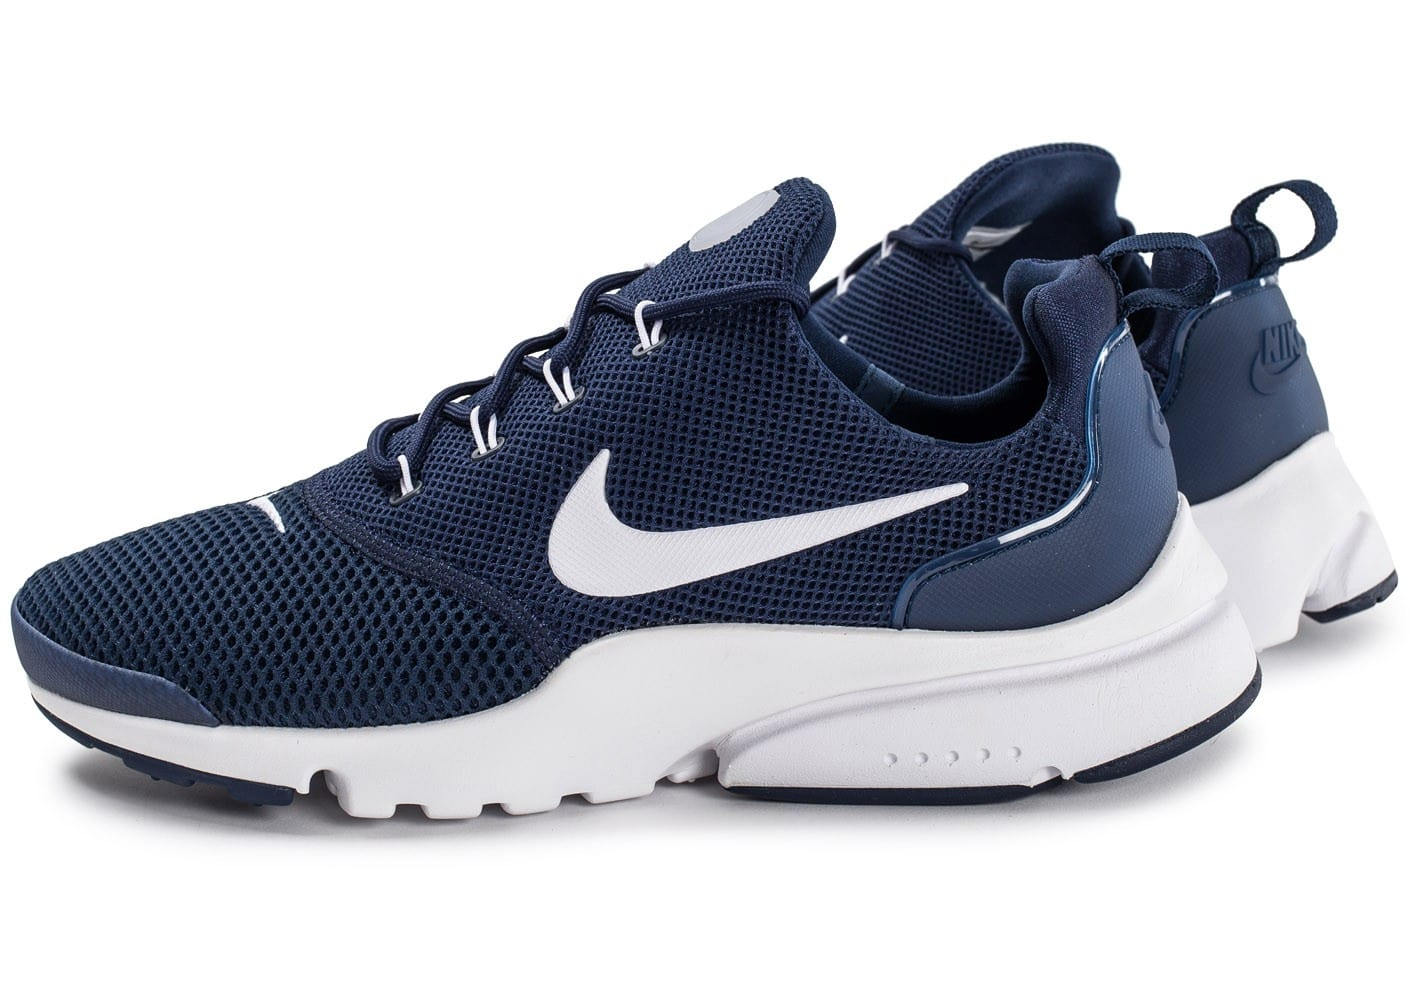 nike presto fly bleu marine chaussures homme chausport. Black Bedroom Furniture Sets. Home Design Ideas